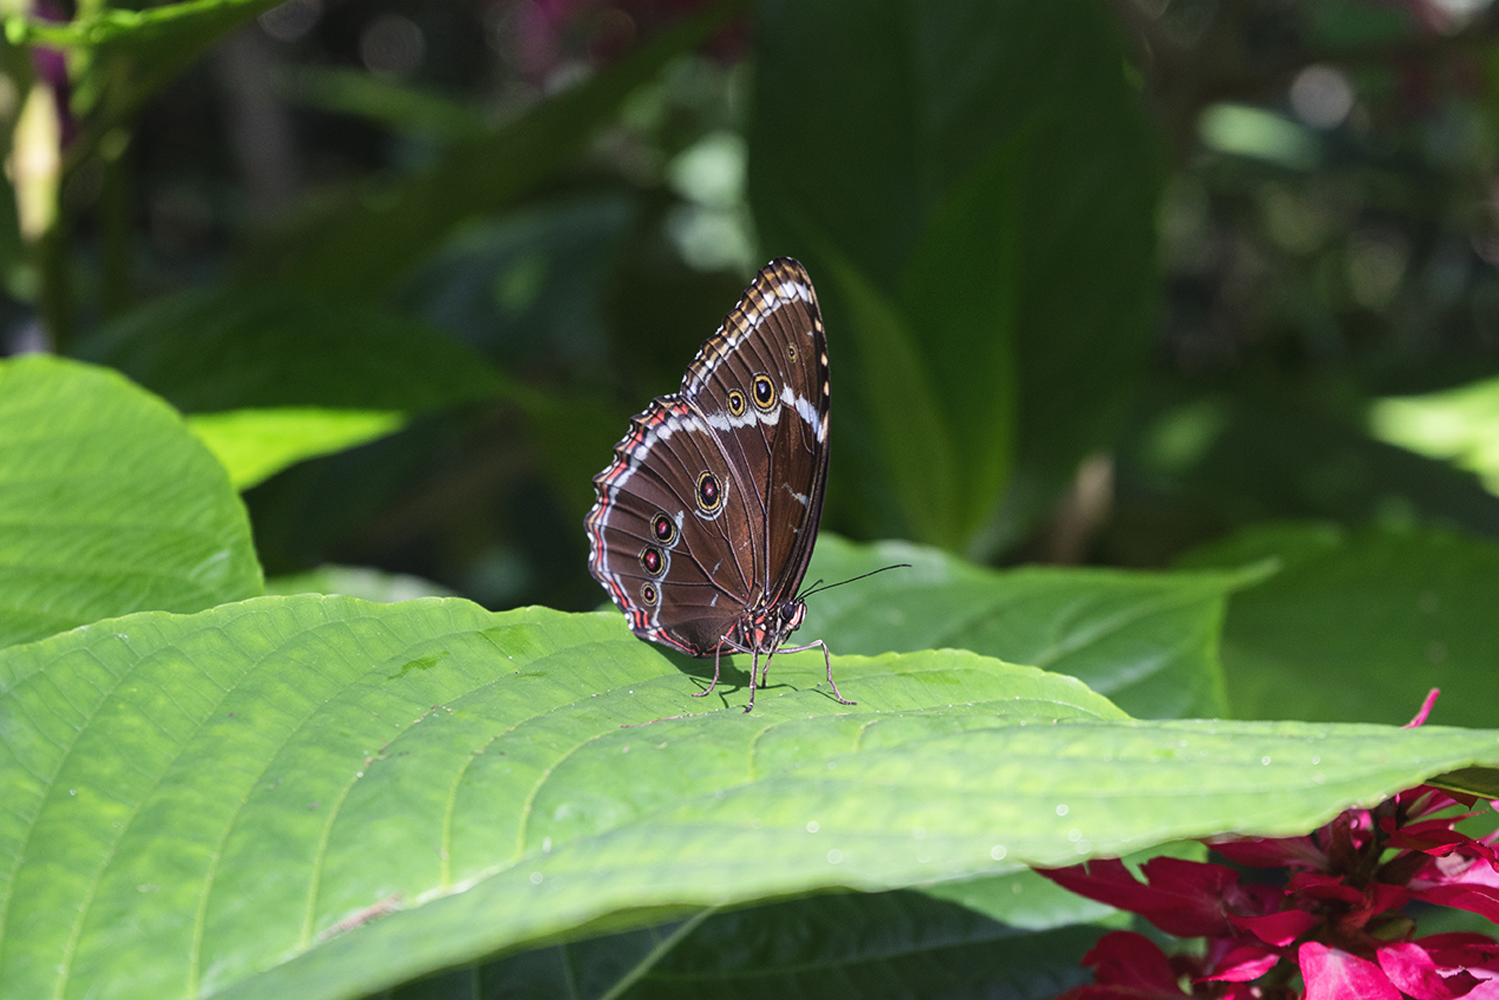 A butterfly perched on a leaf